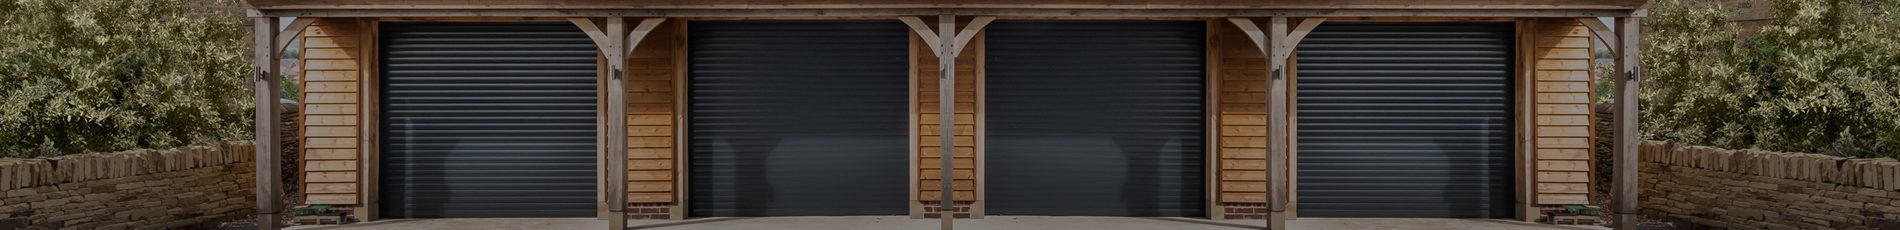 Roller Garage Doors Shoreham-by-Sea